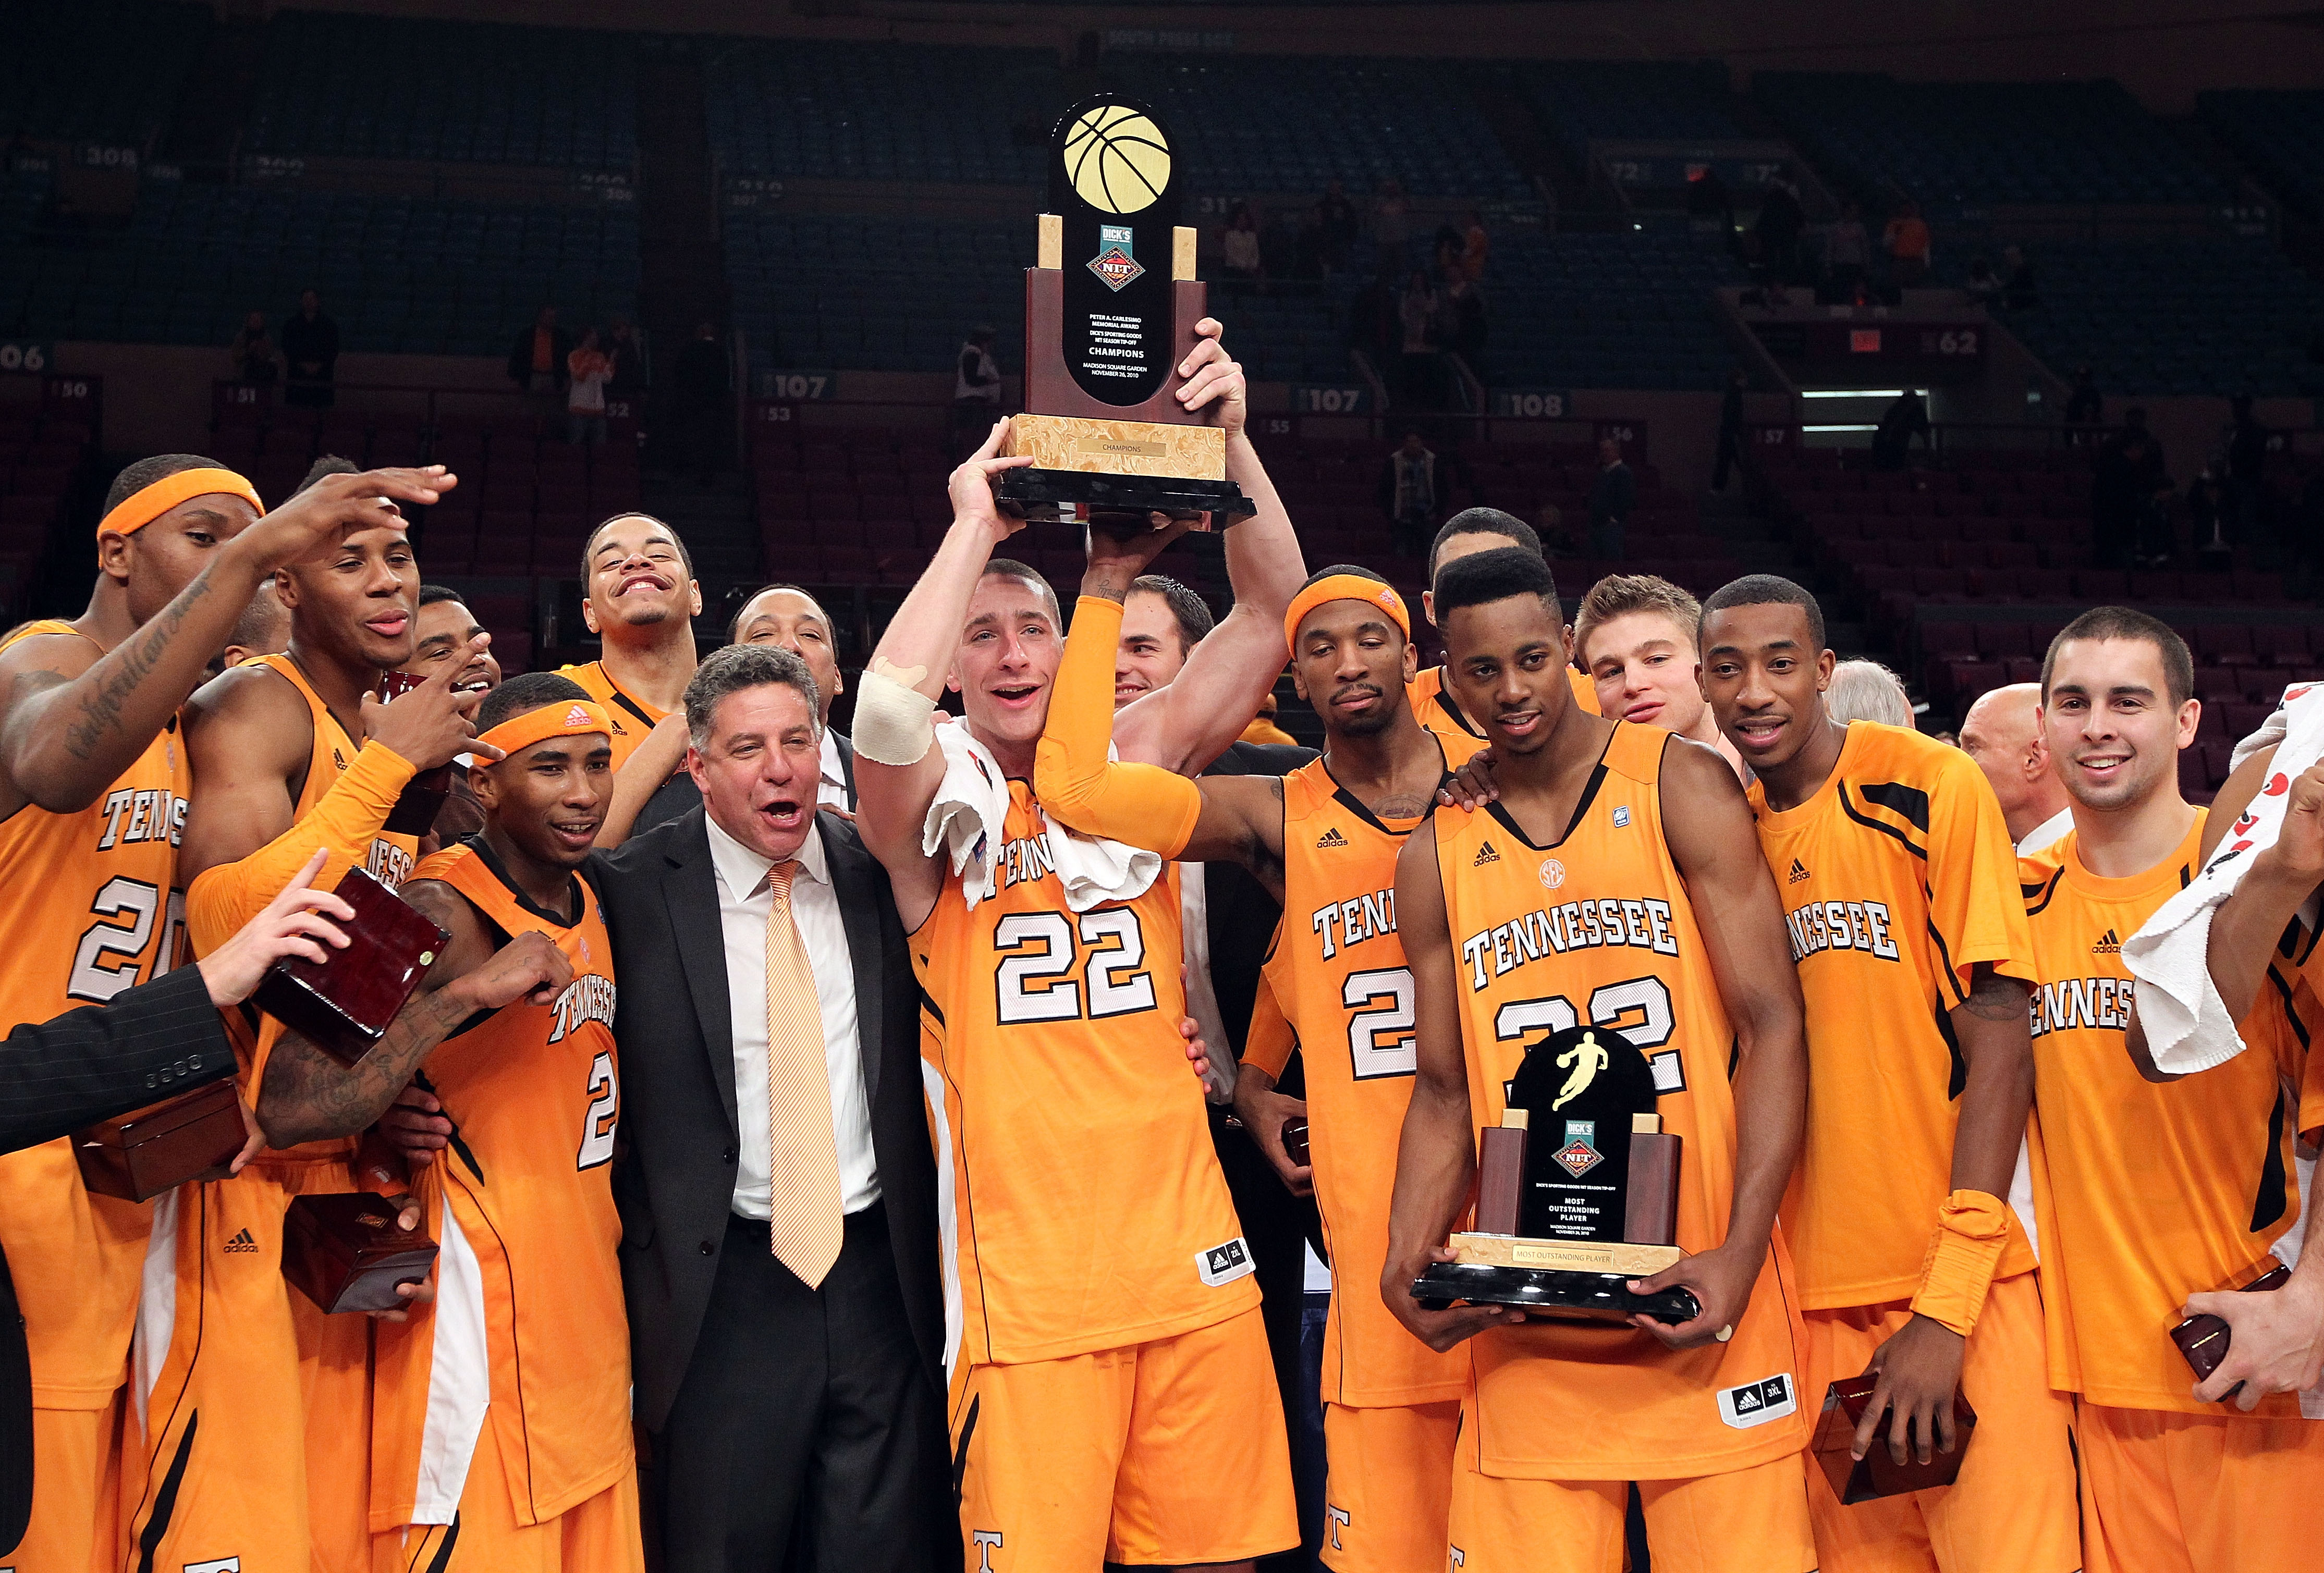 NEW YORK - NOVEMBER 26: The Tennessee Volunteers  celebrate defeating the Villanova Wildcats  during the Championship game at Madison Square Garden on November 26, 2010 in New York City.  (Photo by Nick Laham/Getty Images)